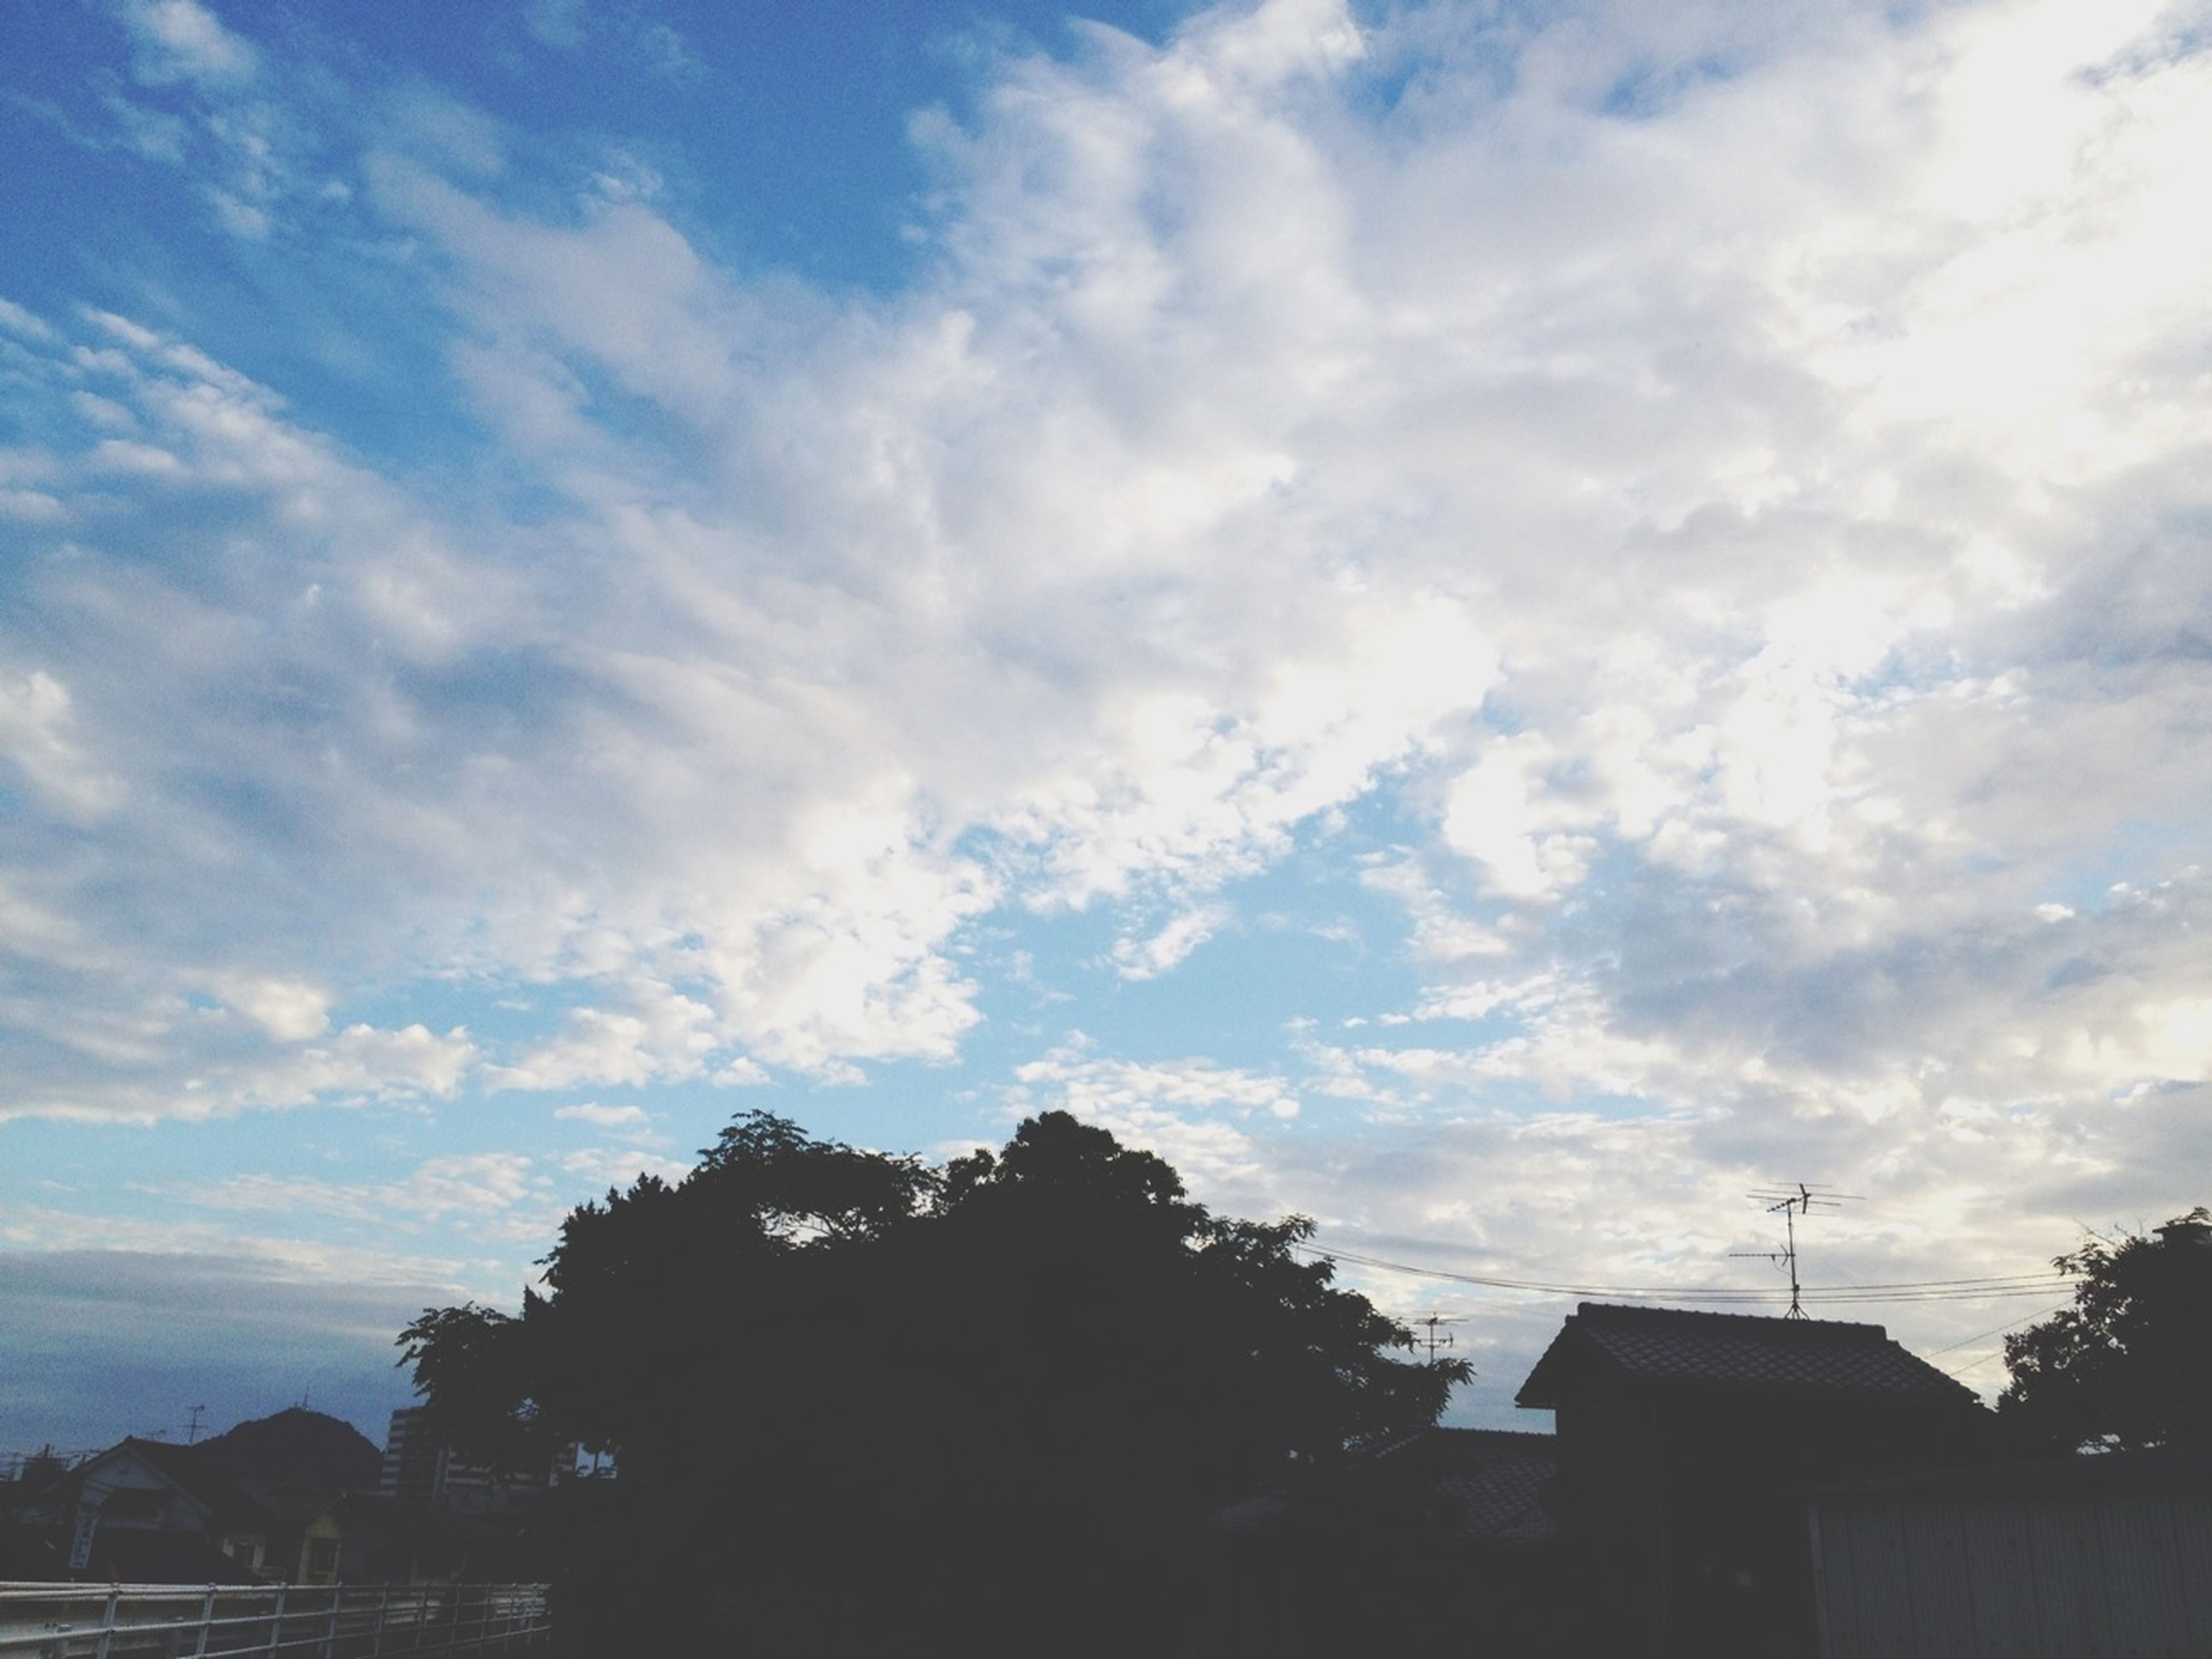 sky, building exterior, tree, built structure, cloud - sky, architecture, house, cloud, cloudy, silhouette, nature, beauty in nature, scenics, residential structure, tranquil scene, tranquility, low angle view, outdoors, residential building, no people